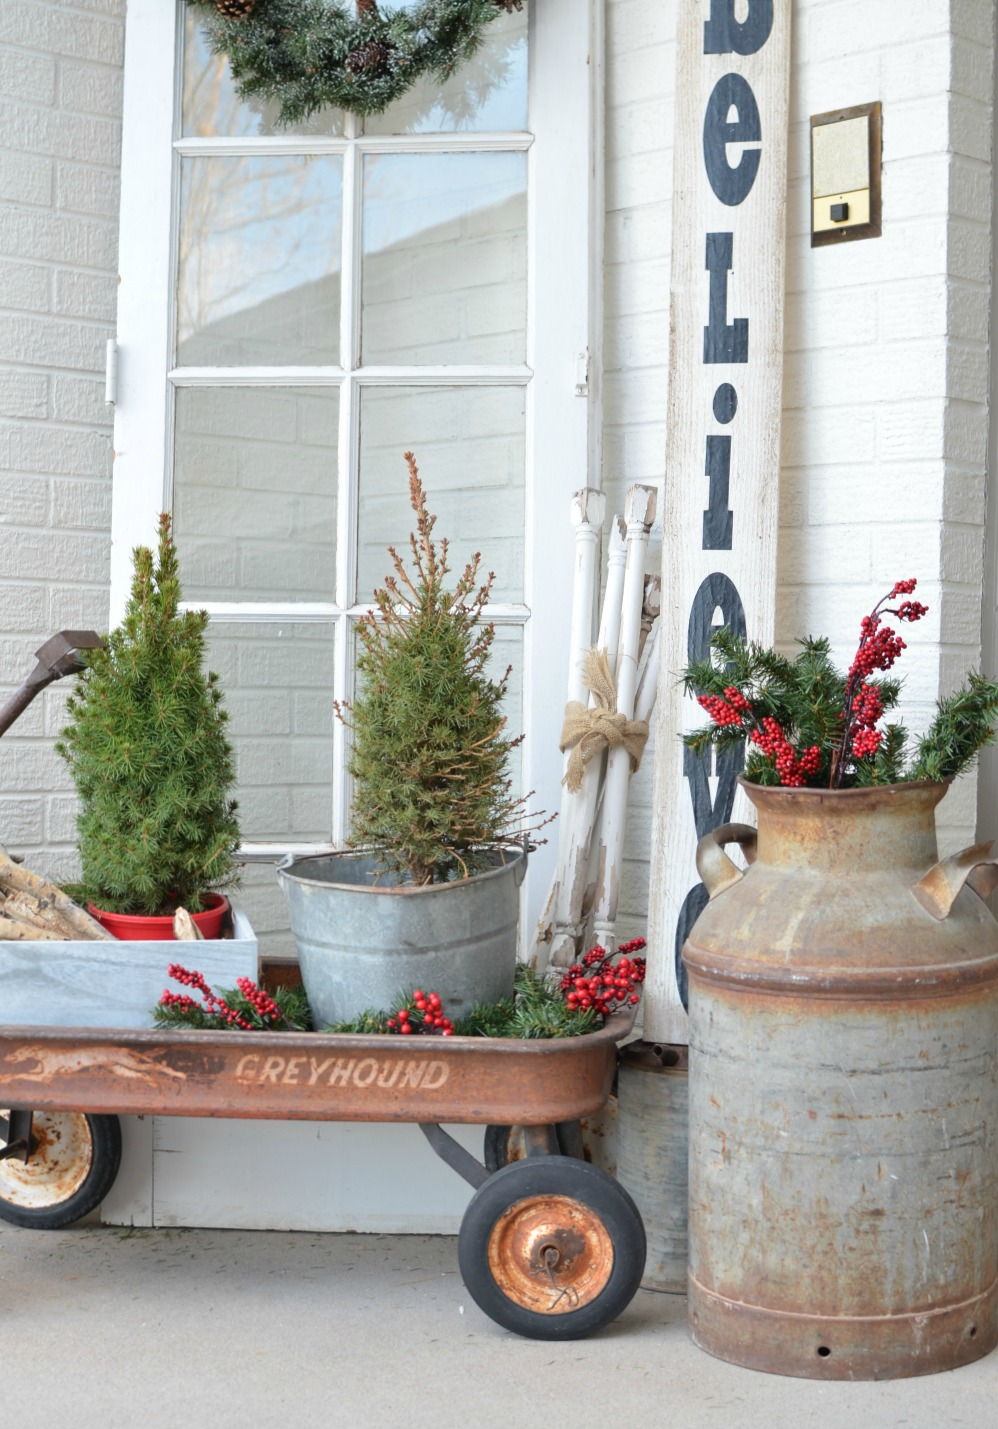 add one of these wagons to your yard sale list this summer theyre perfect for outdoor decor - Vintage Outdoor Christmas Decorations For Sale